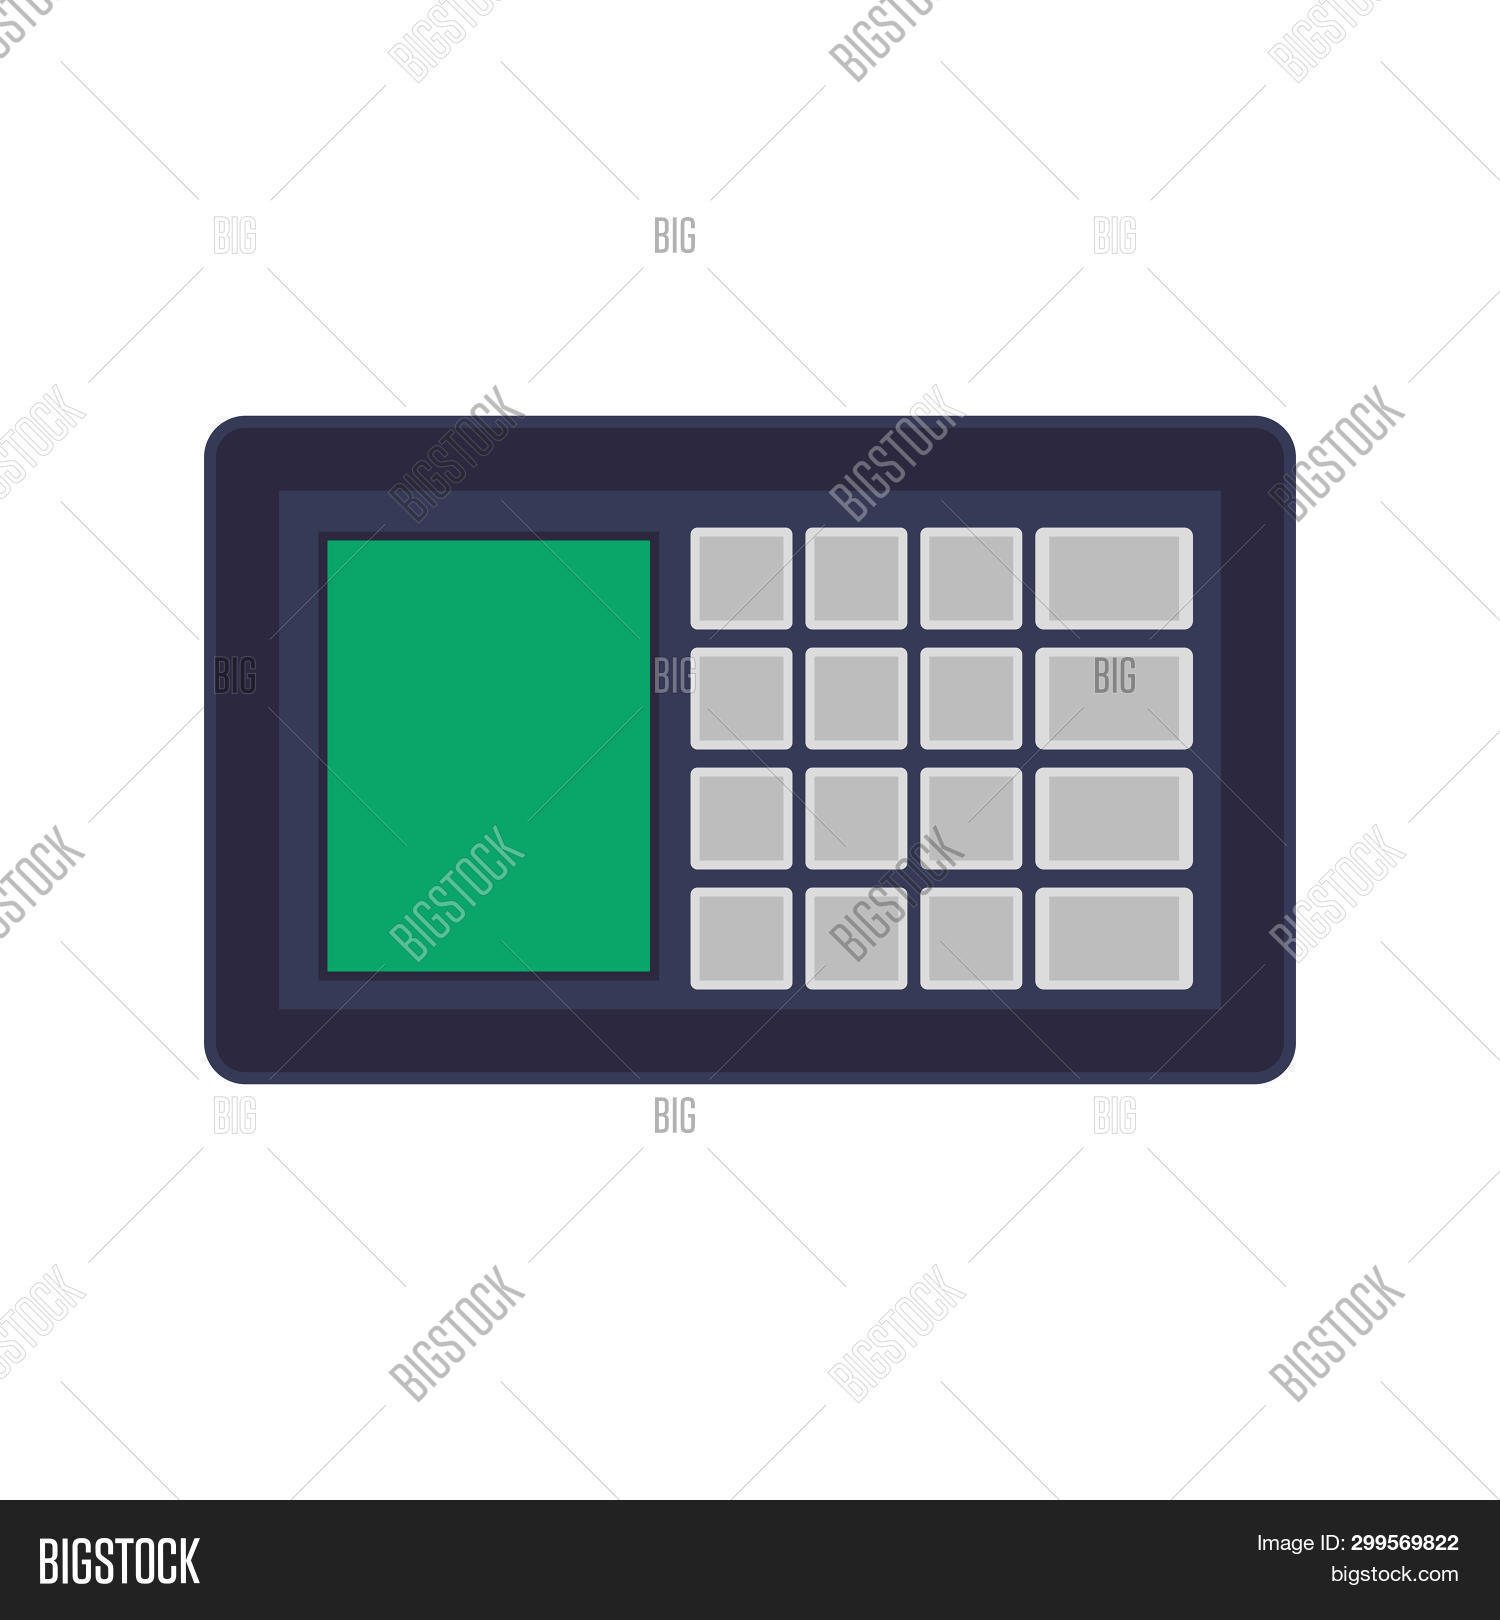 Security System Vector Photo Free Trial Bigstock